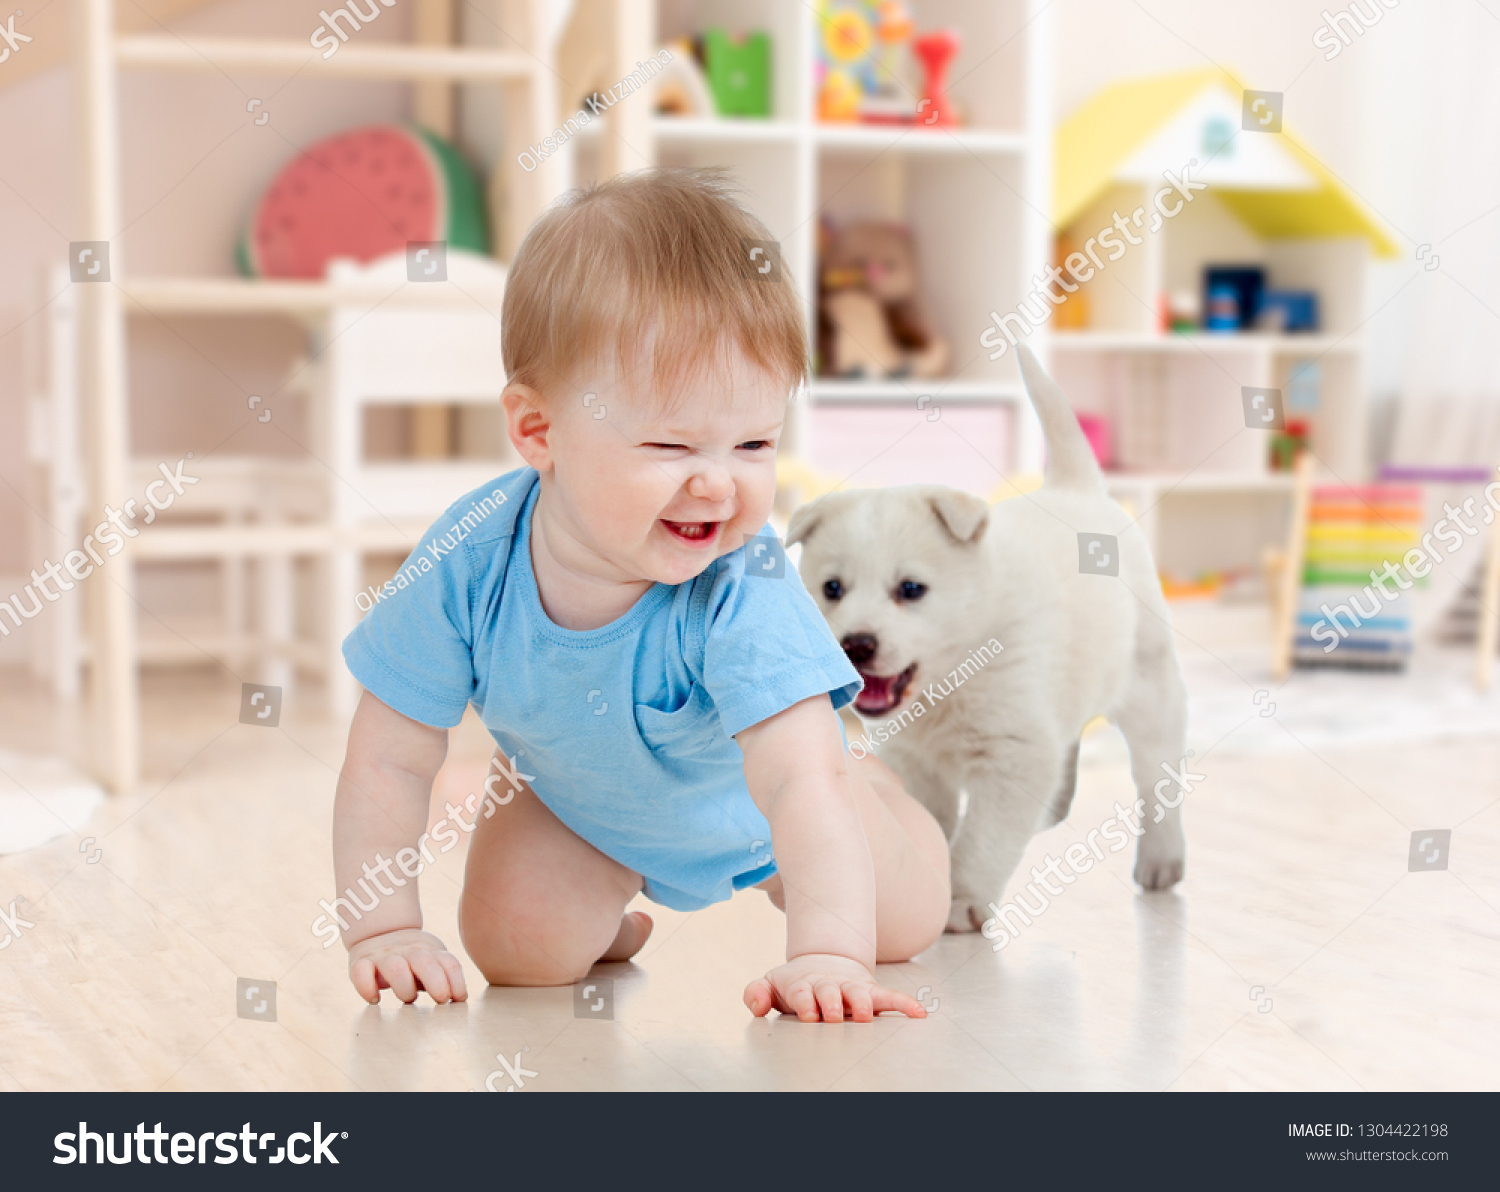 Little baby boy crawling and playing with adorable puppy at home #1304422198